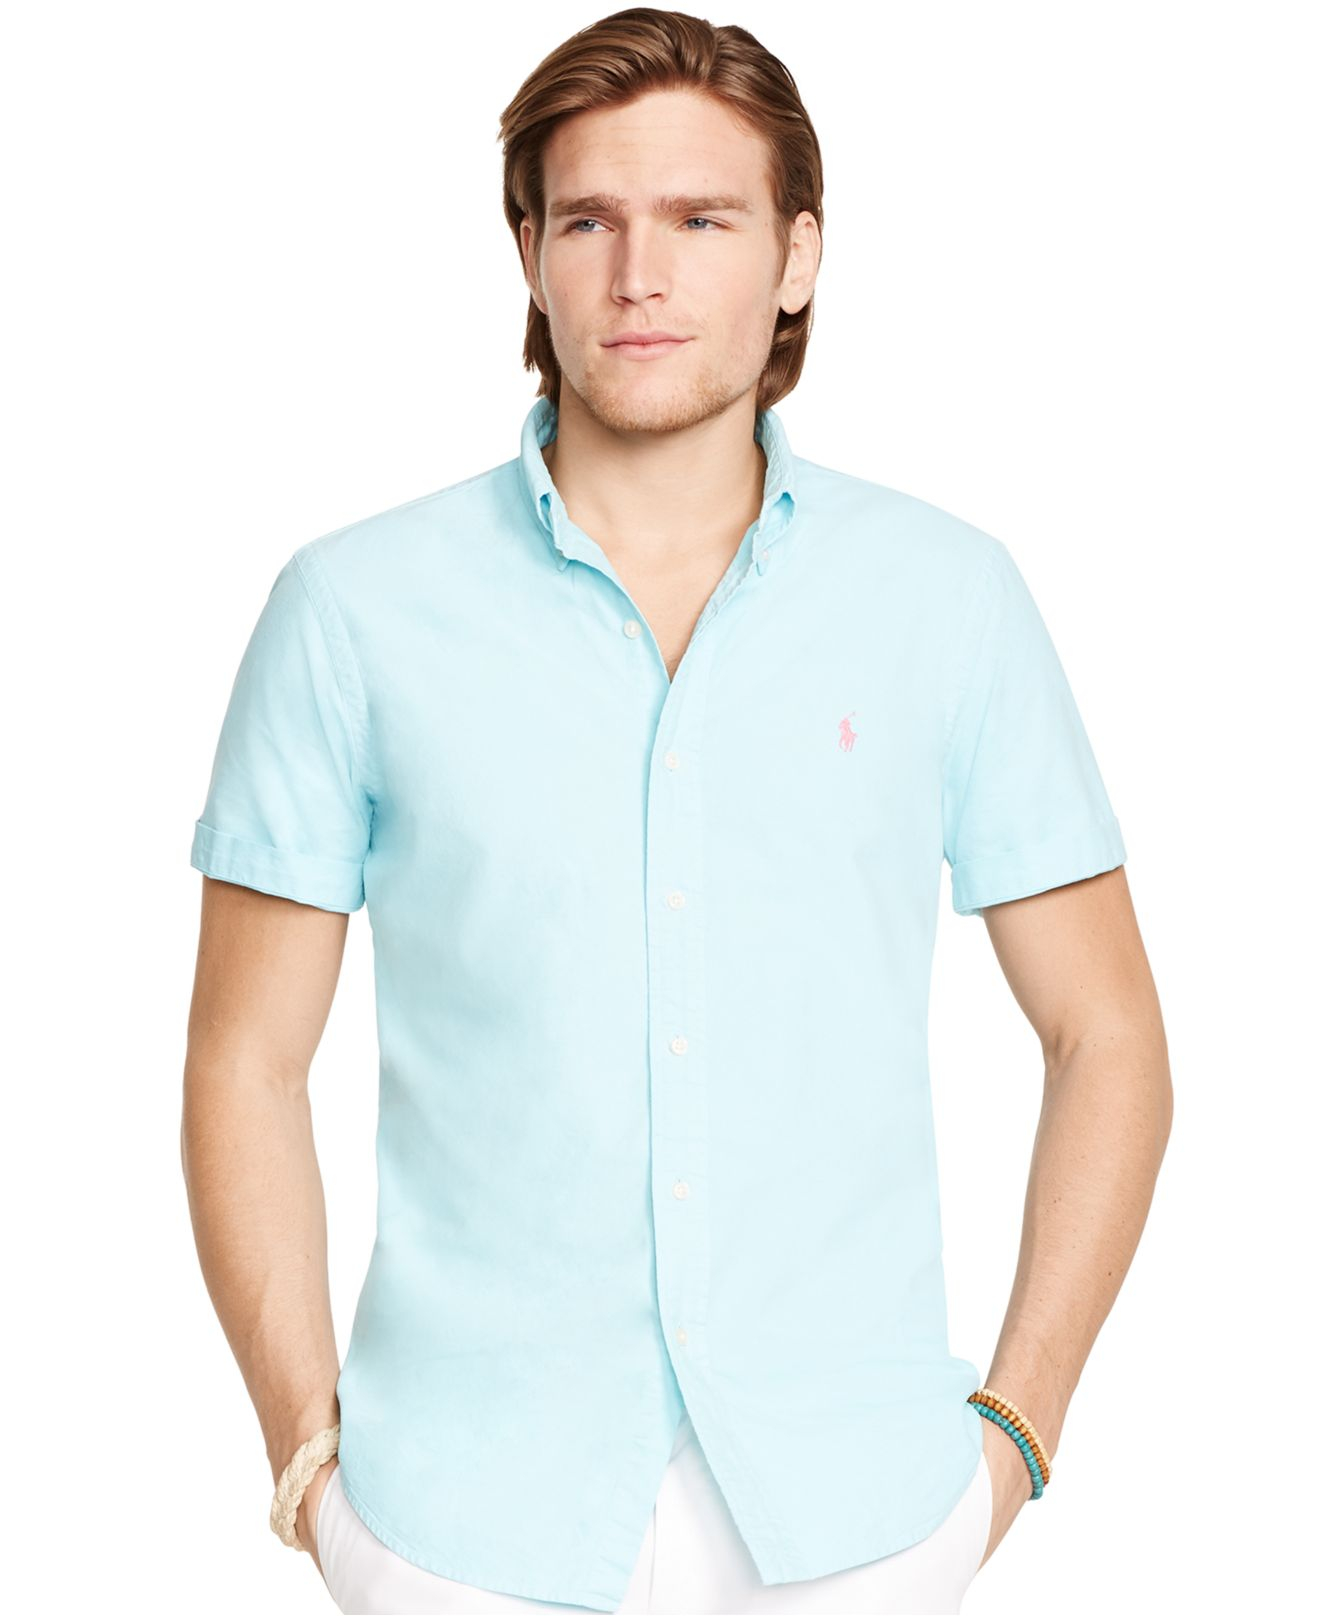 NWT Men/'s Polo Ralph Lauren Short Sleeved Slim Fit Oxford Shirt Solid Colors NEW